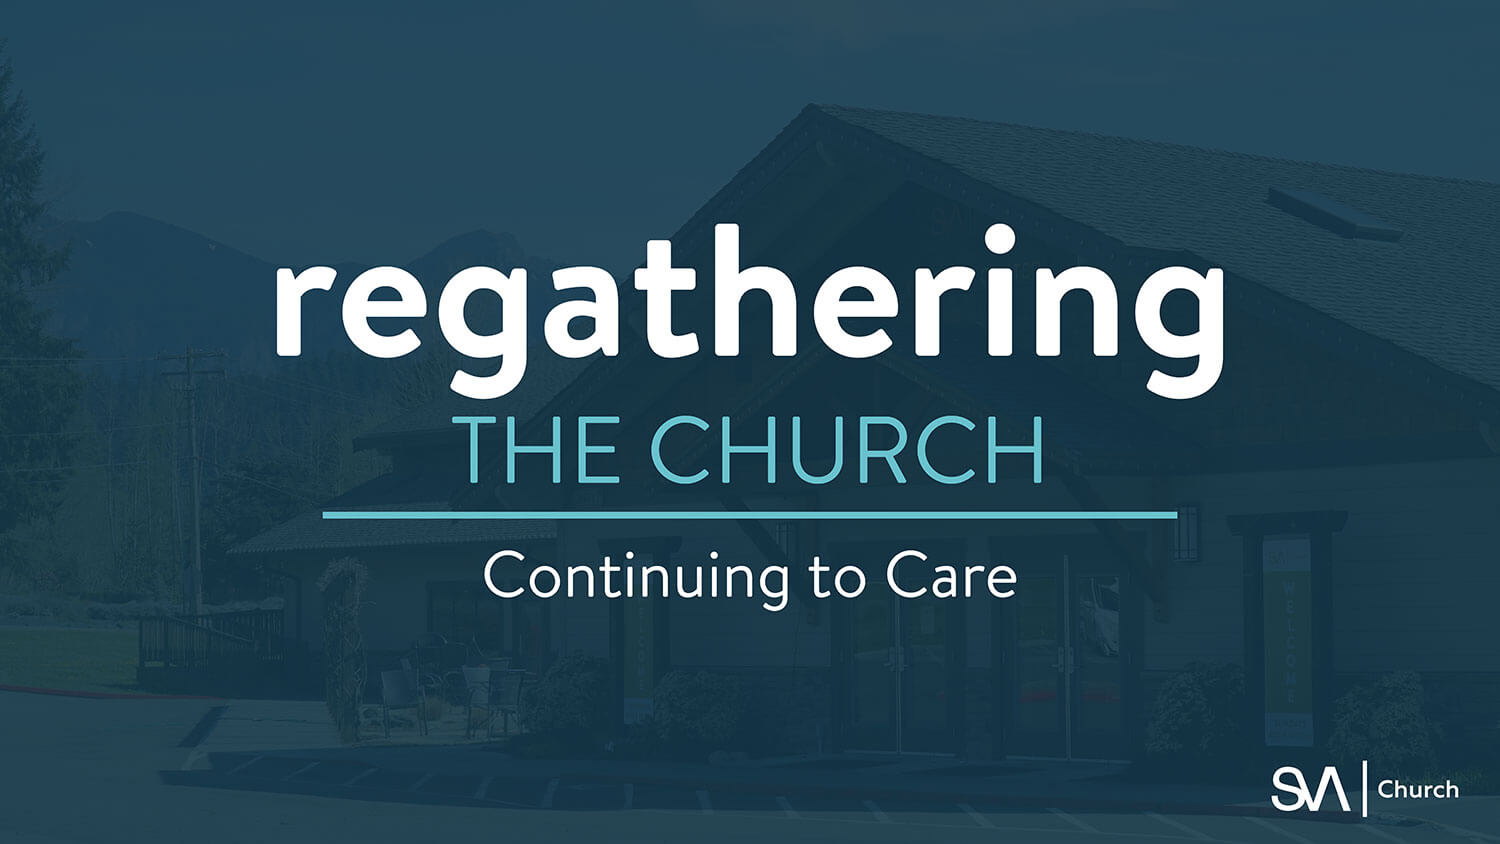 Regathering the Church @ SVA